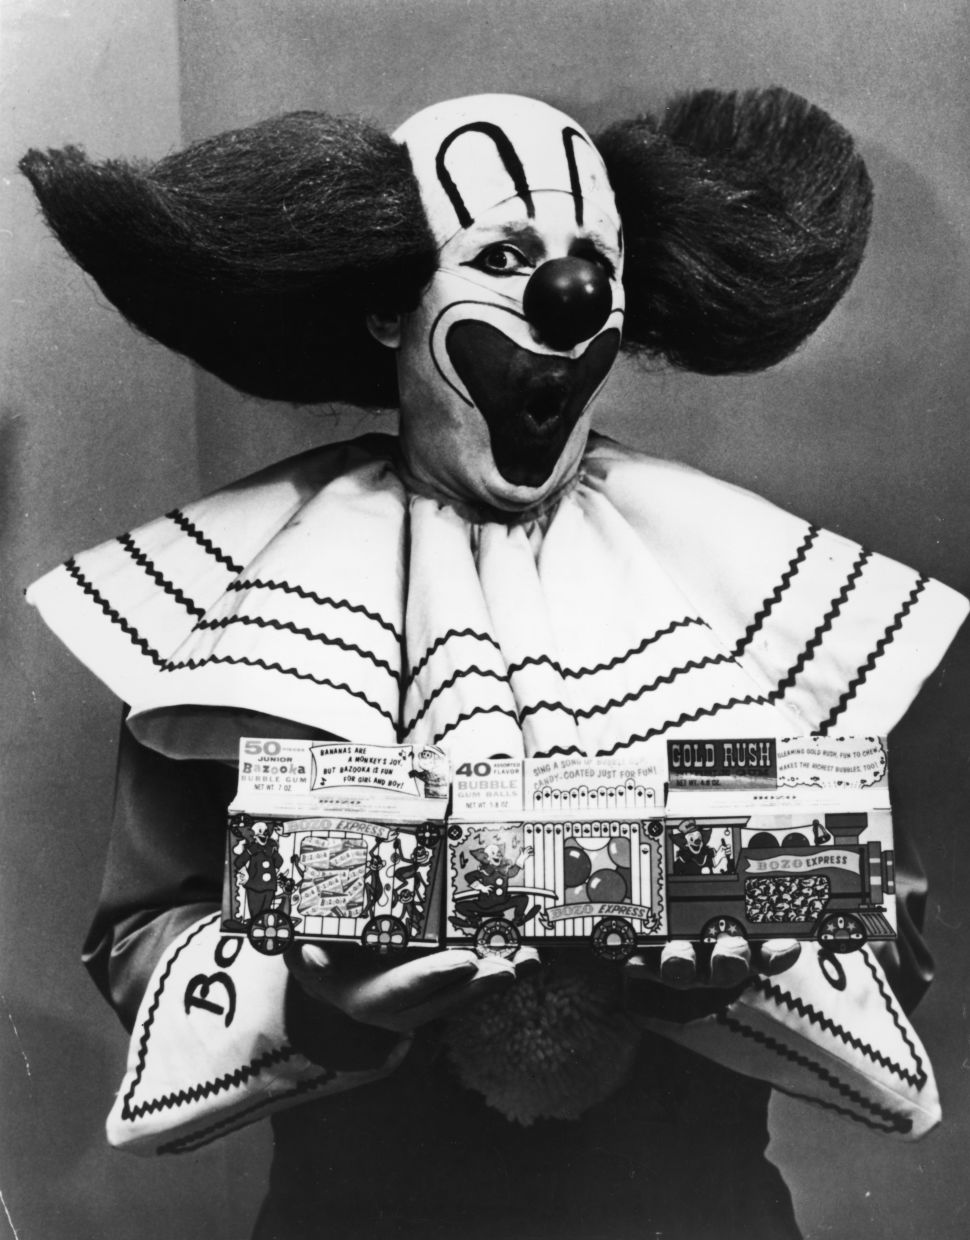 Frank Avruch Cause of Death, Bozo the Clown Cause of Death